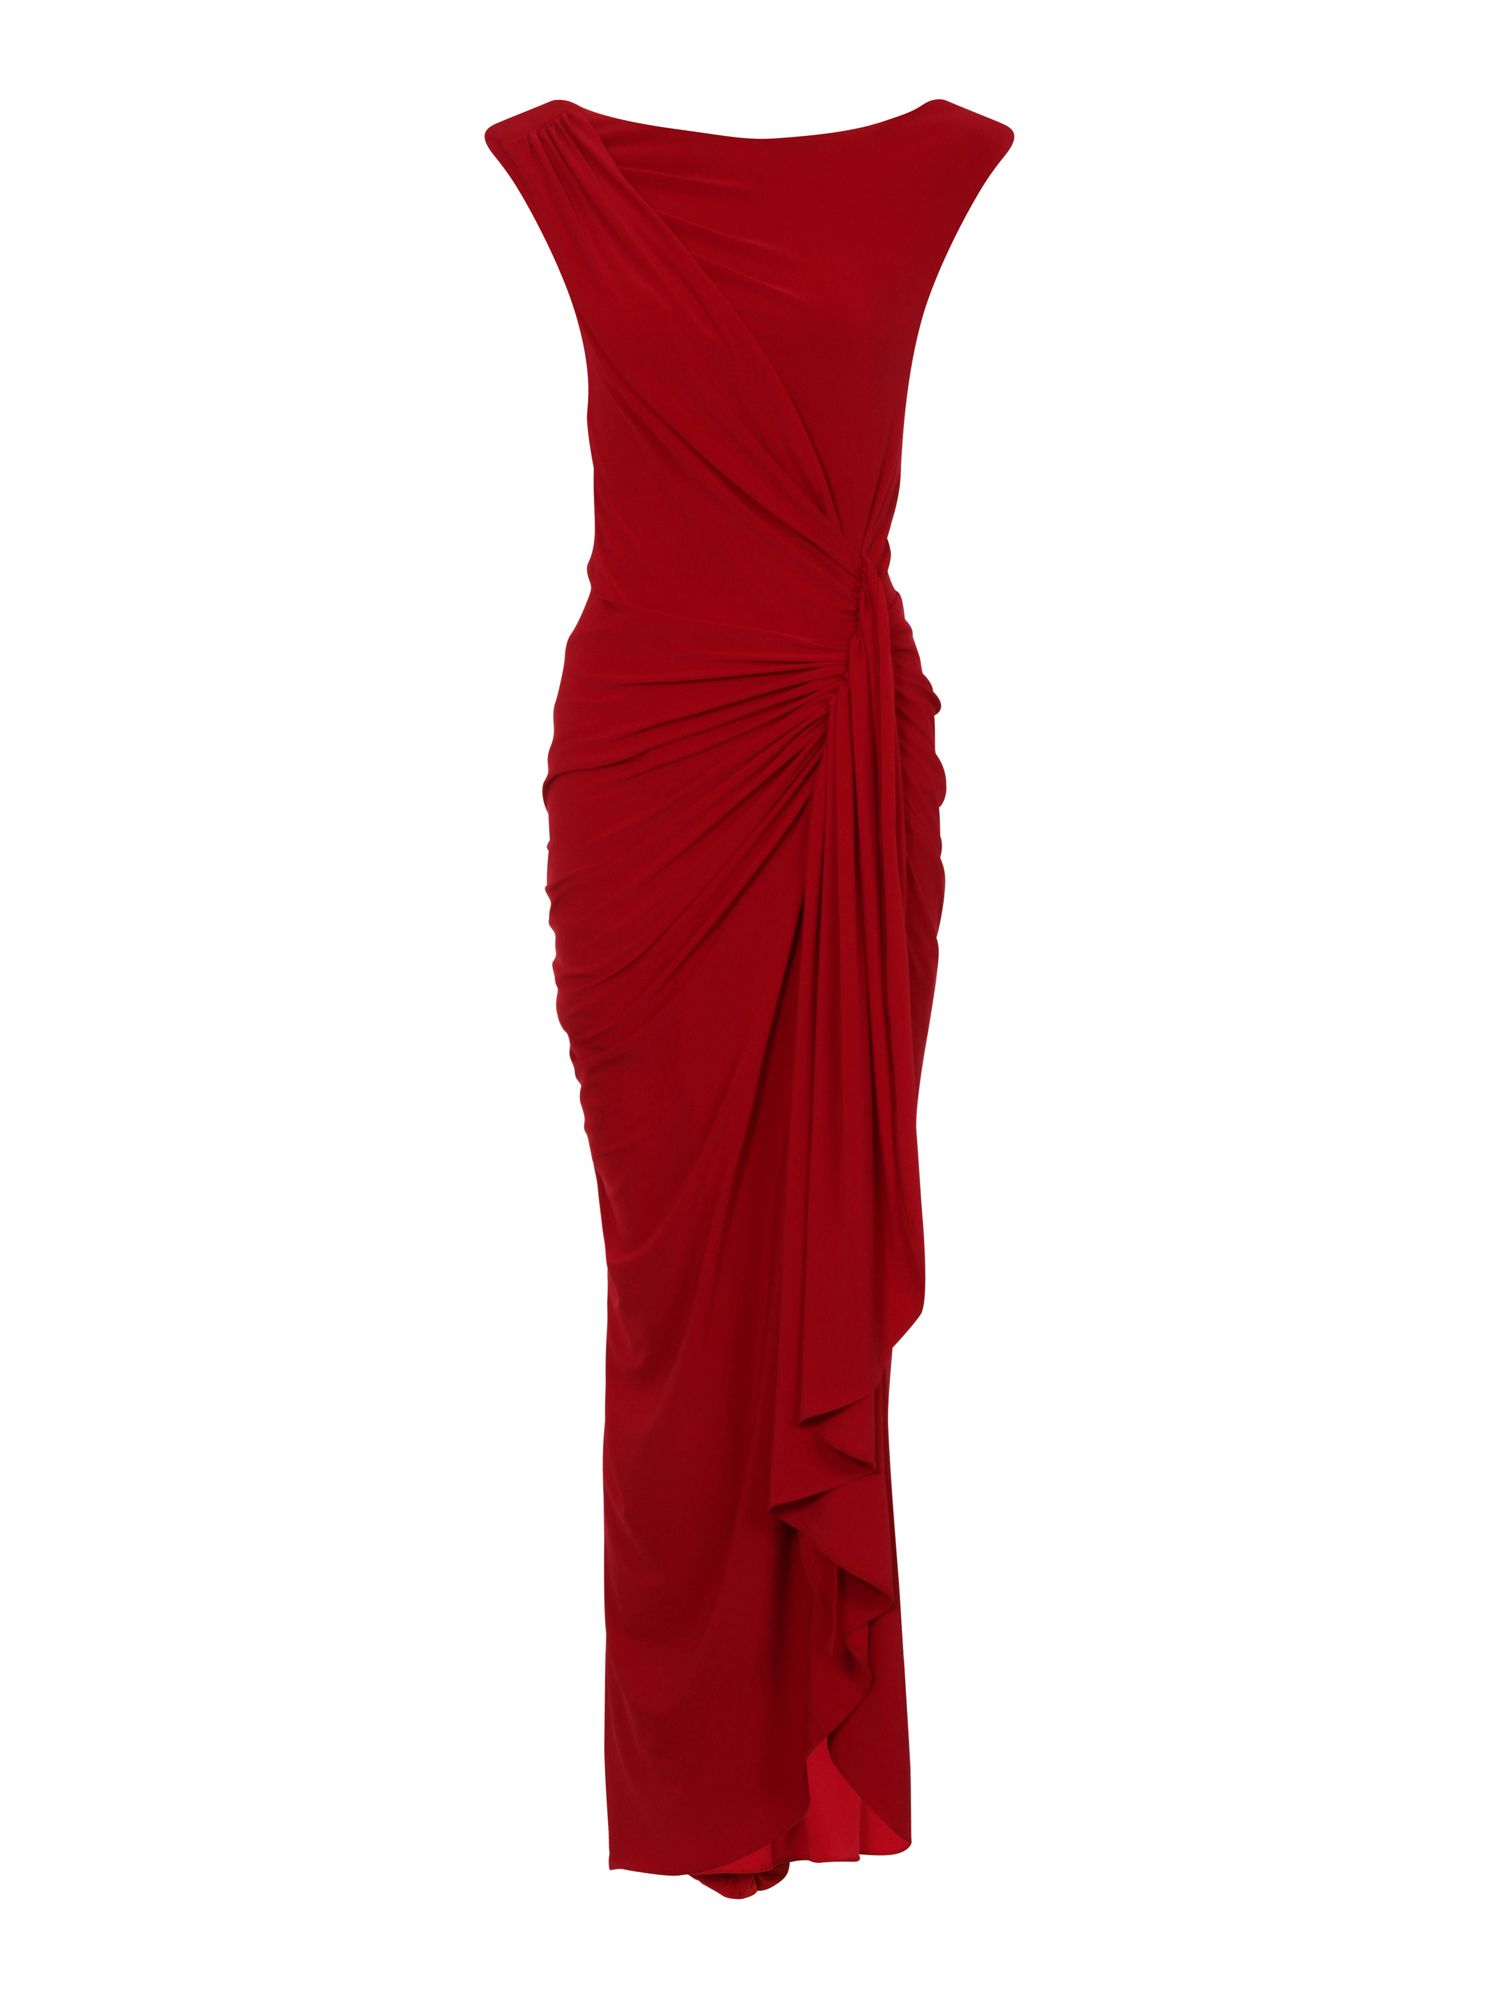 HotSquash Grecian Maxi Dress in Clever Fabric, Red